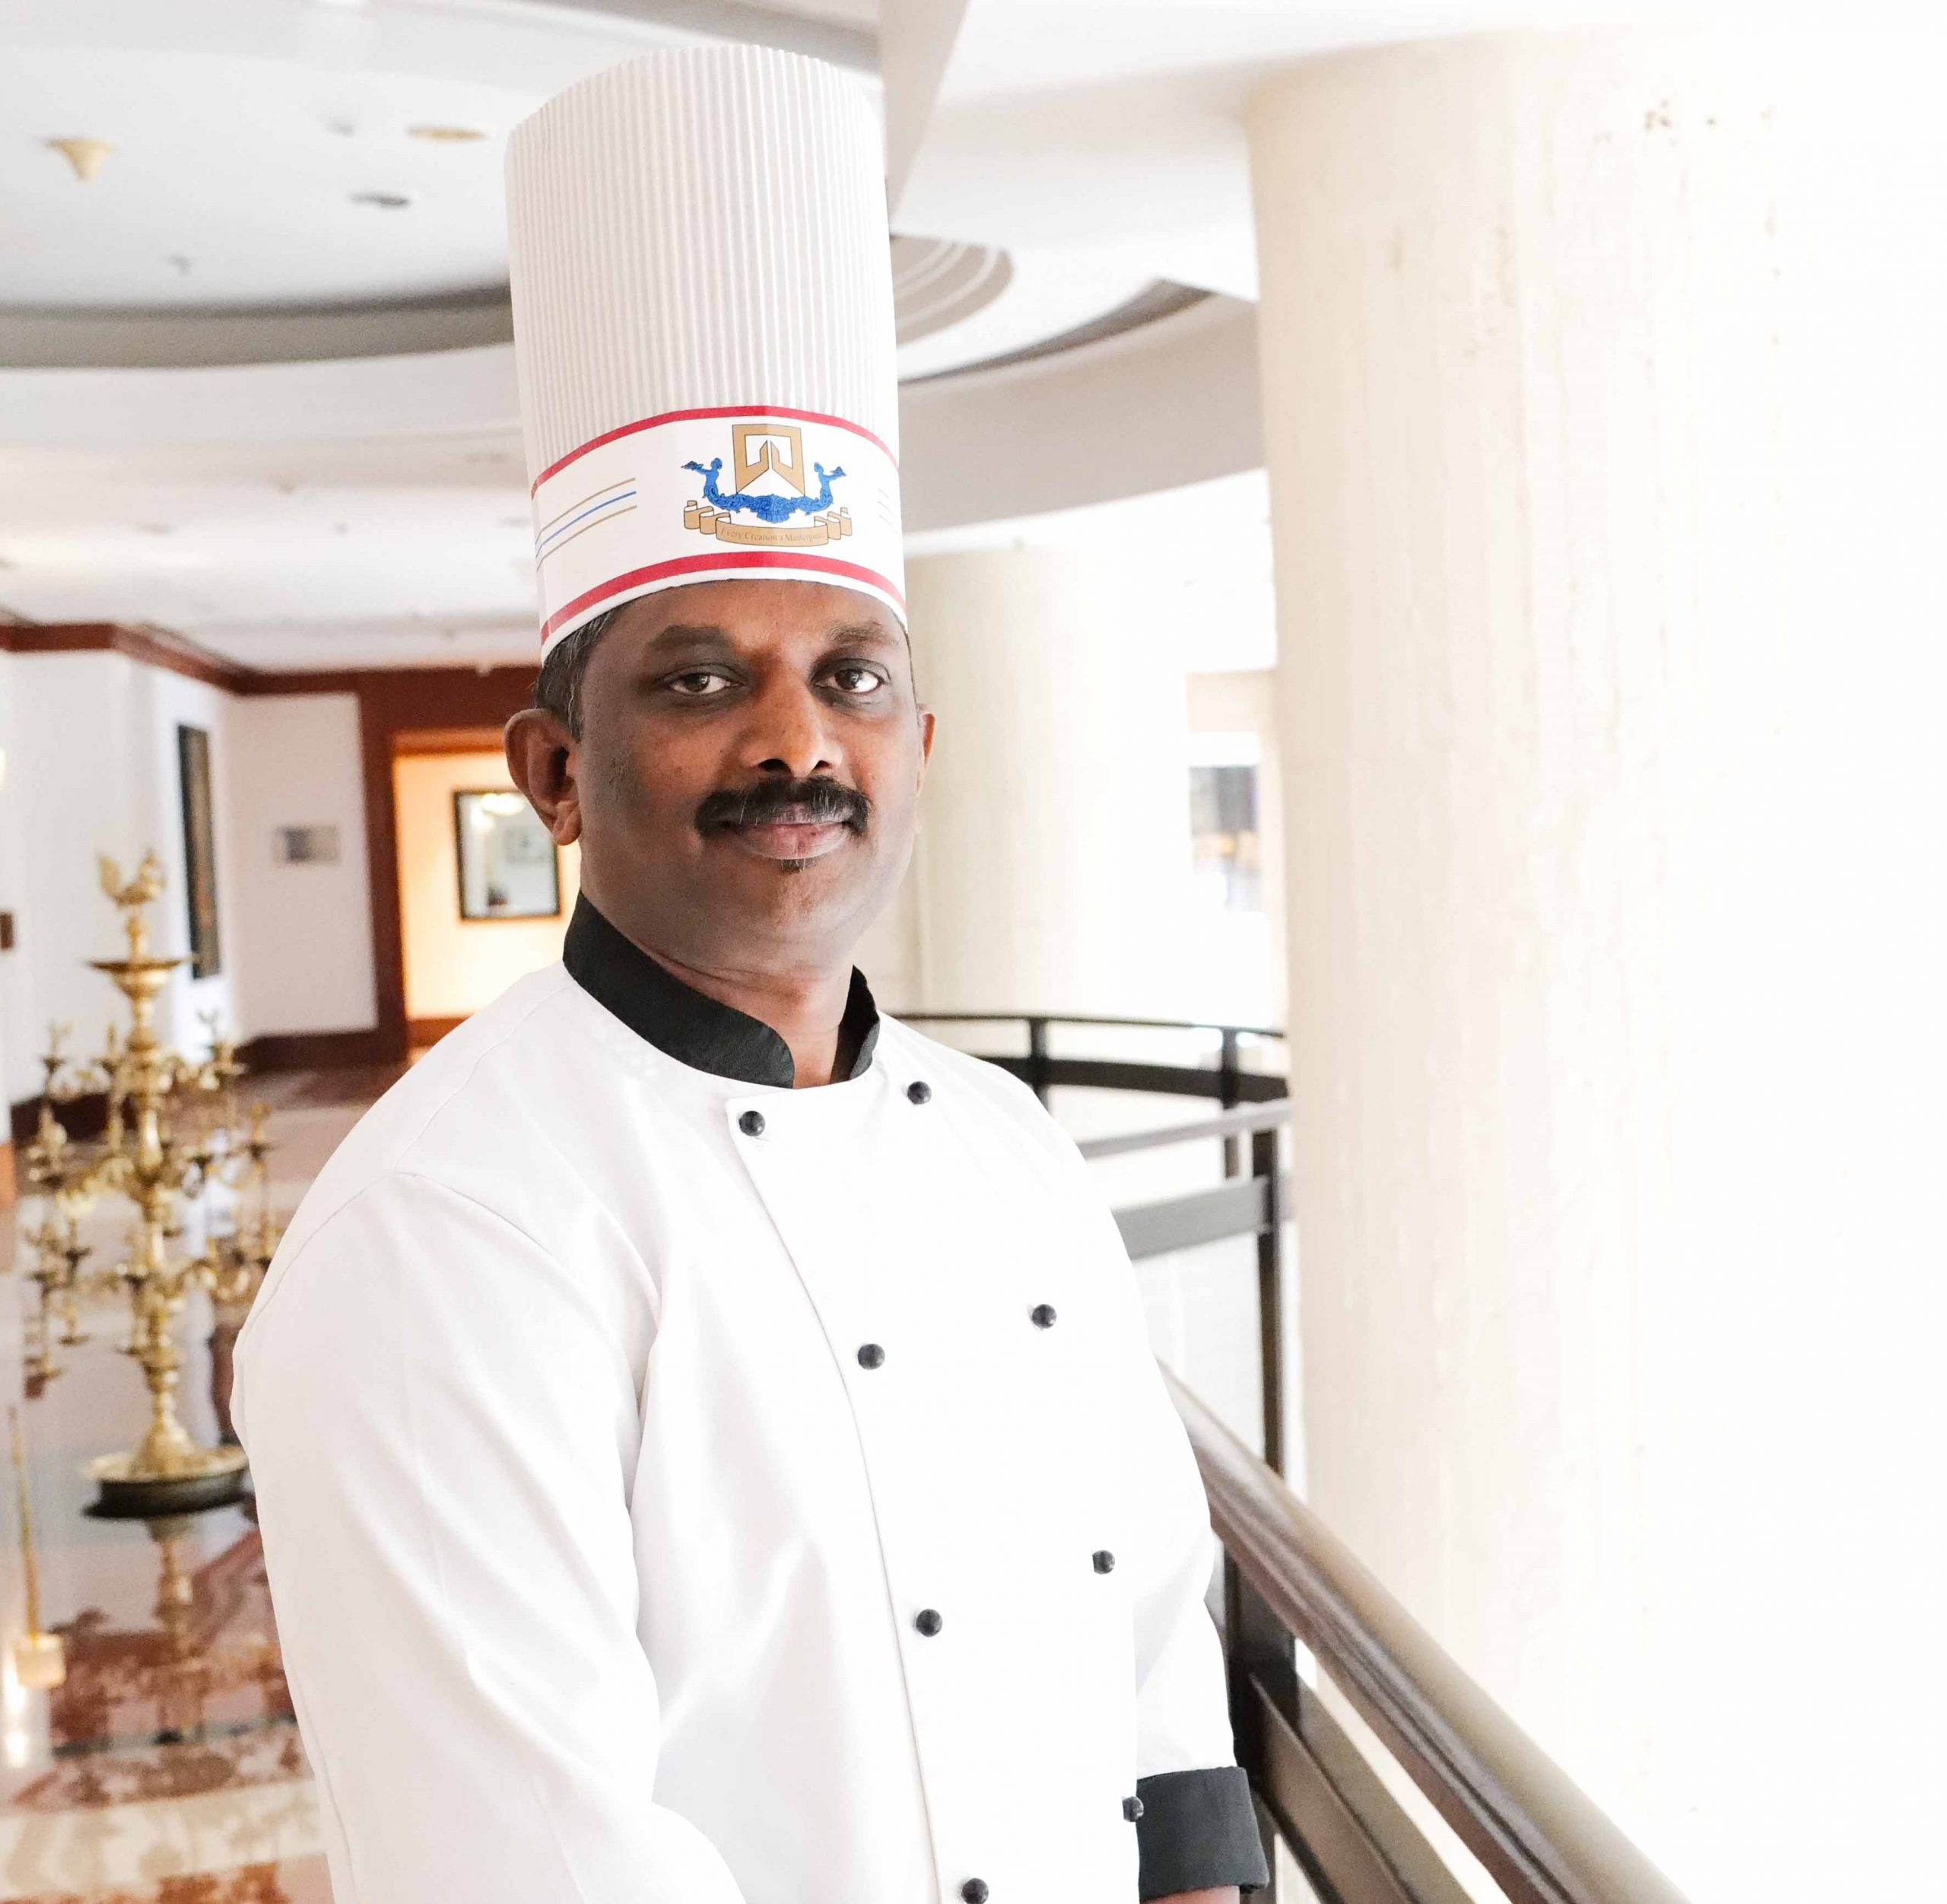 CHEF-VELU-DAKSHIN-COASTAL-ITC--scaled.jpg